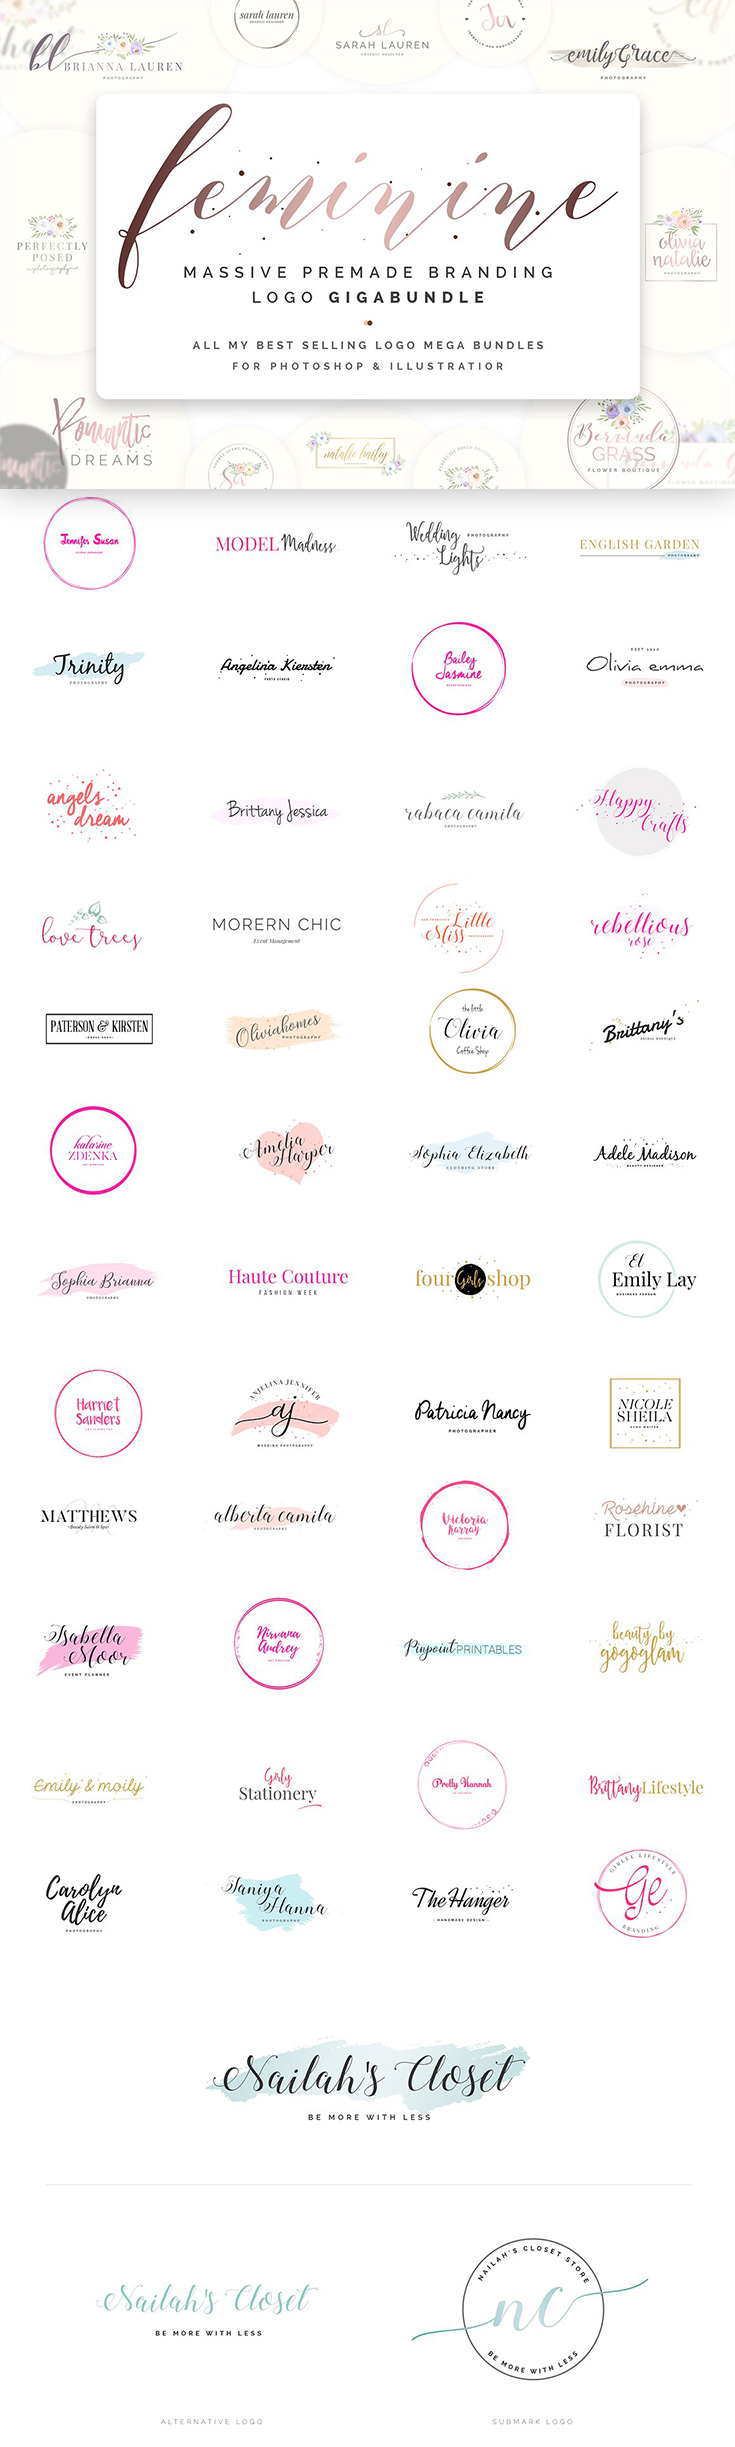 Worth Of Best Selling And Most Popular Premade Branding